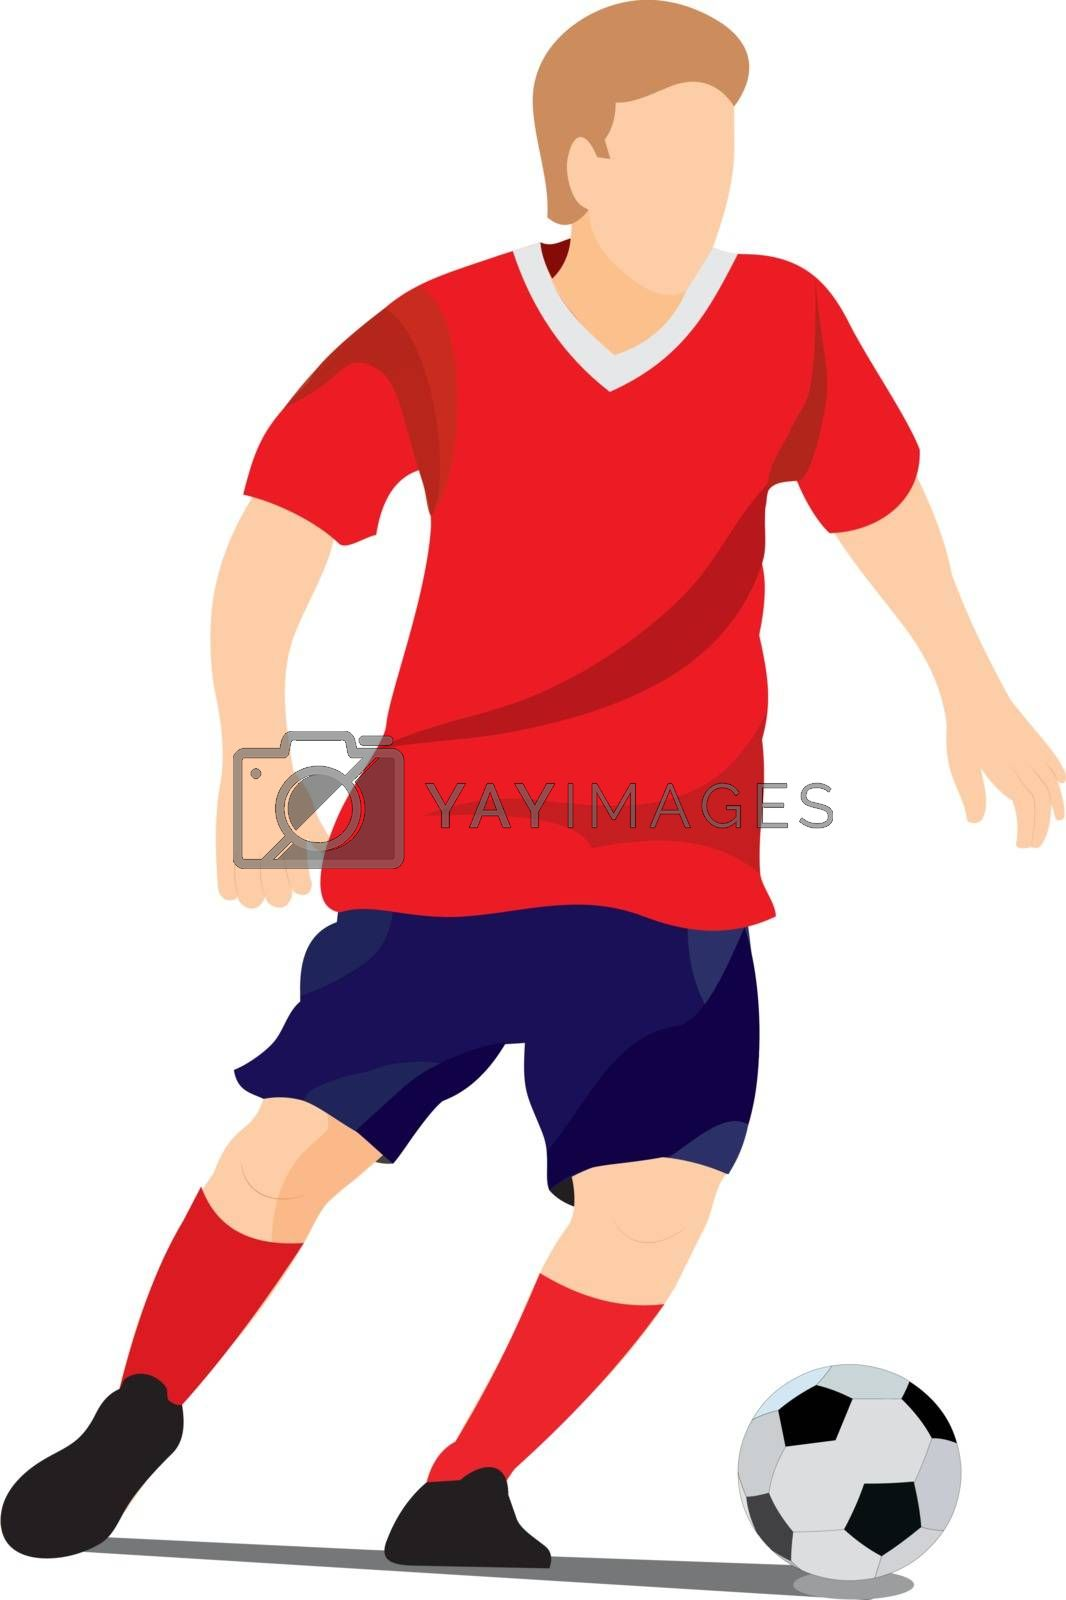 Color vector illustration of a soccer player with a ball without a background, outdoor play, footballer, sport, football player, forward